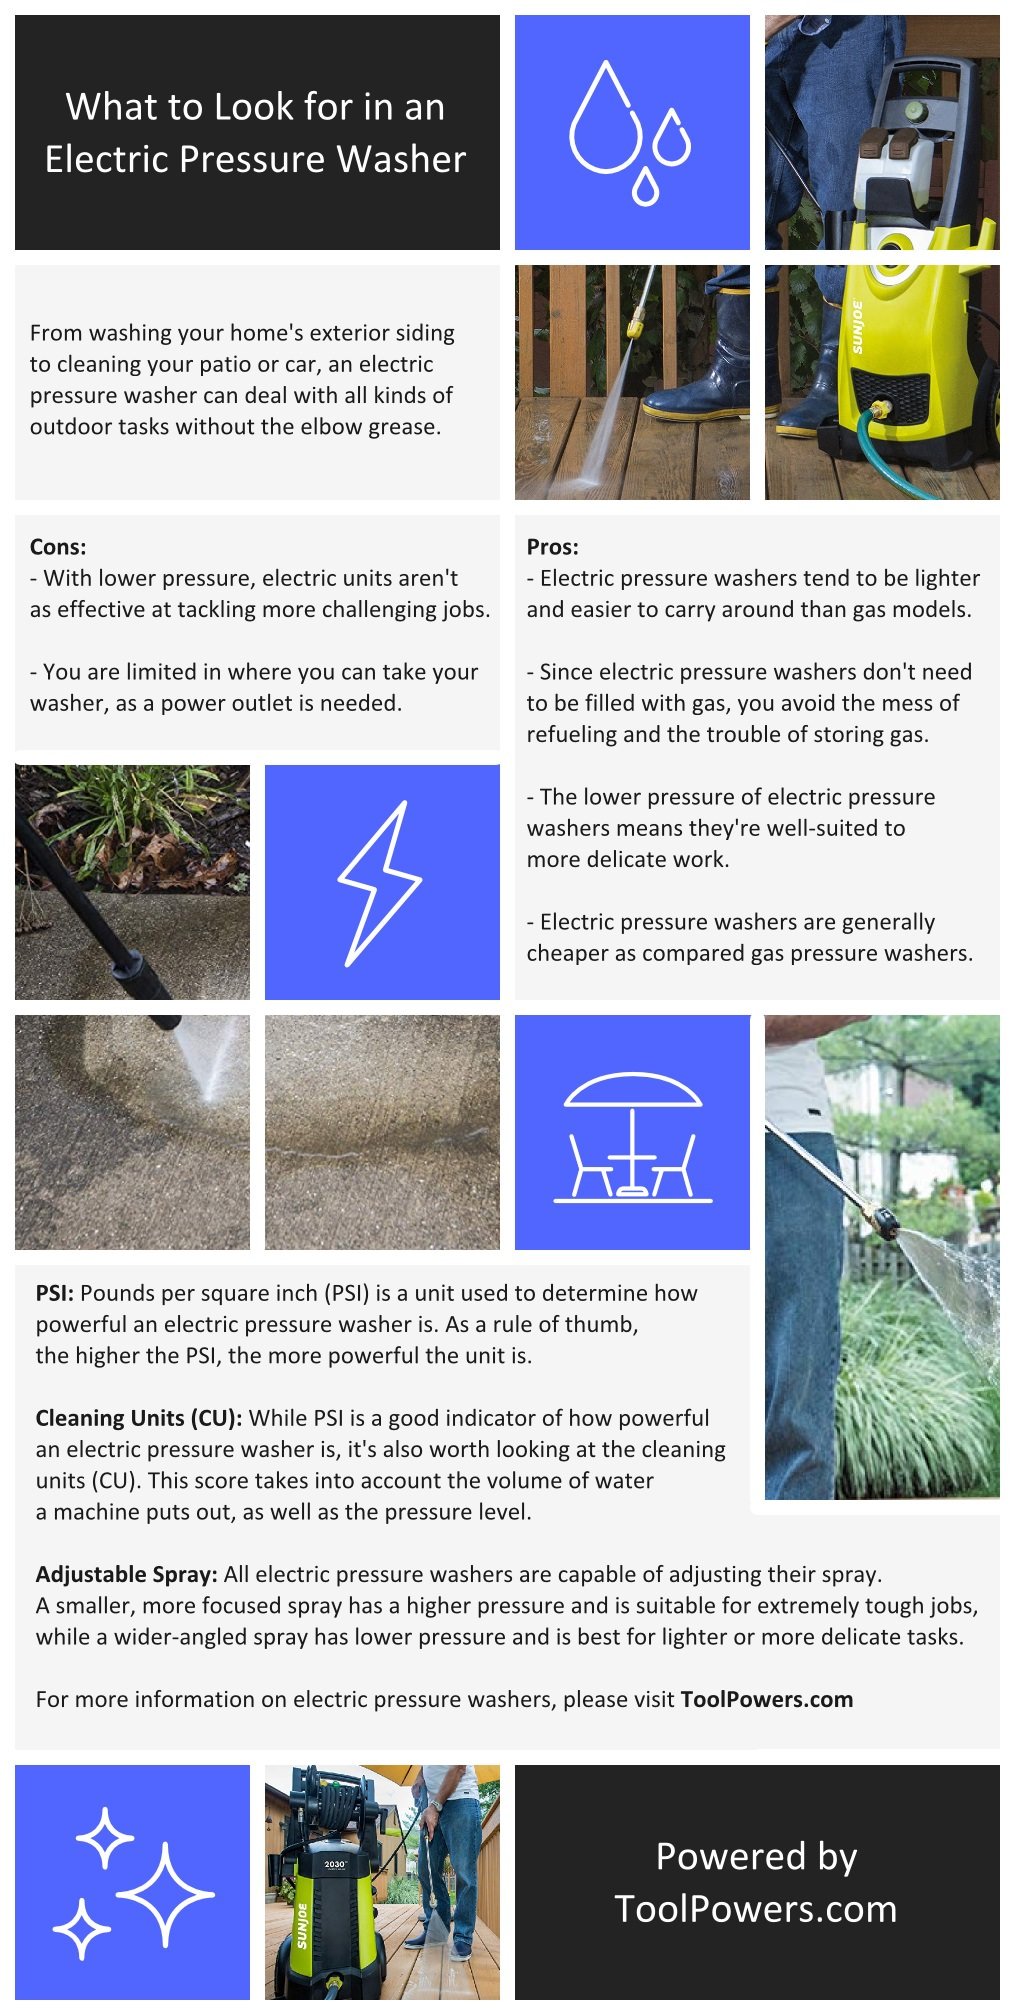 infographic-electric-pressure-washer